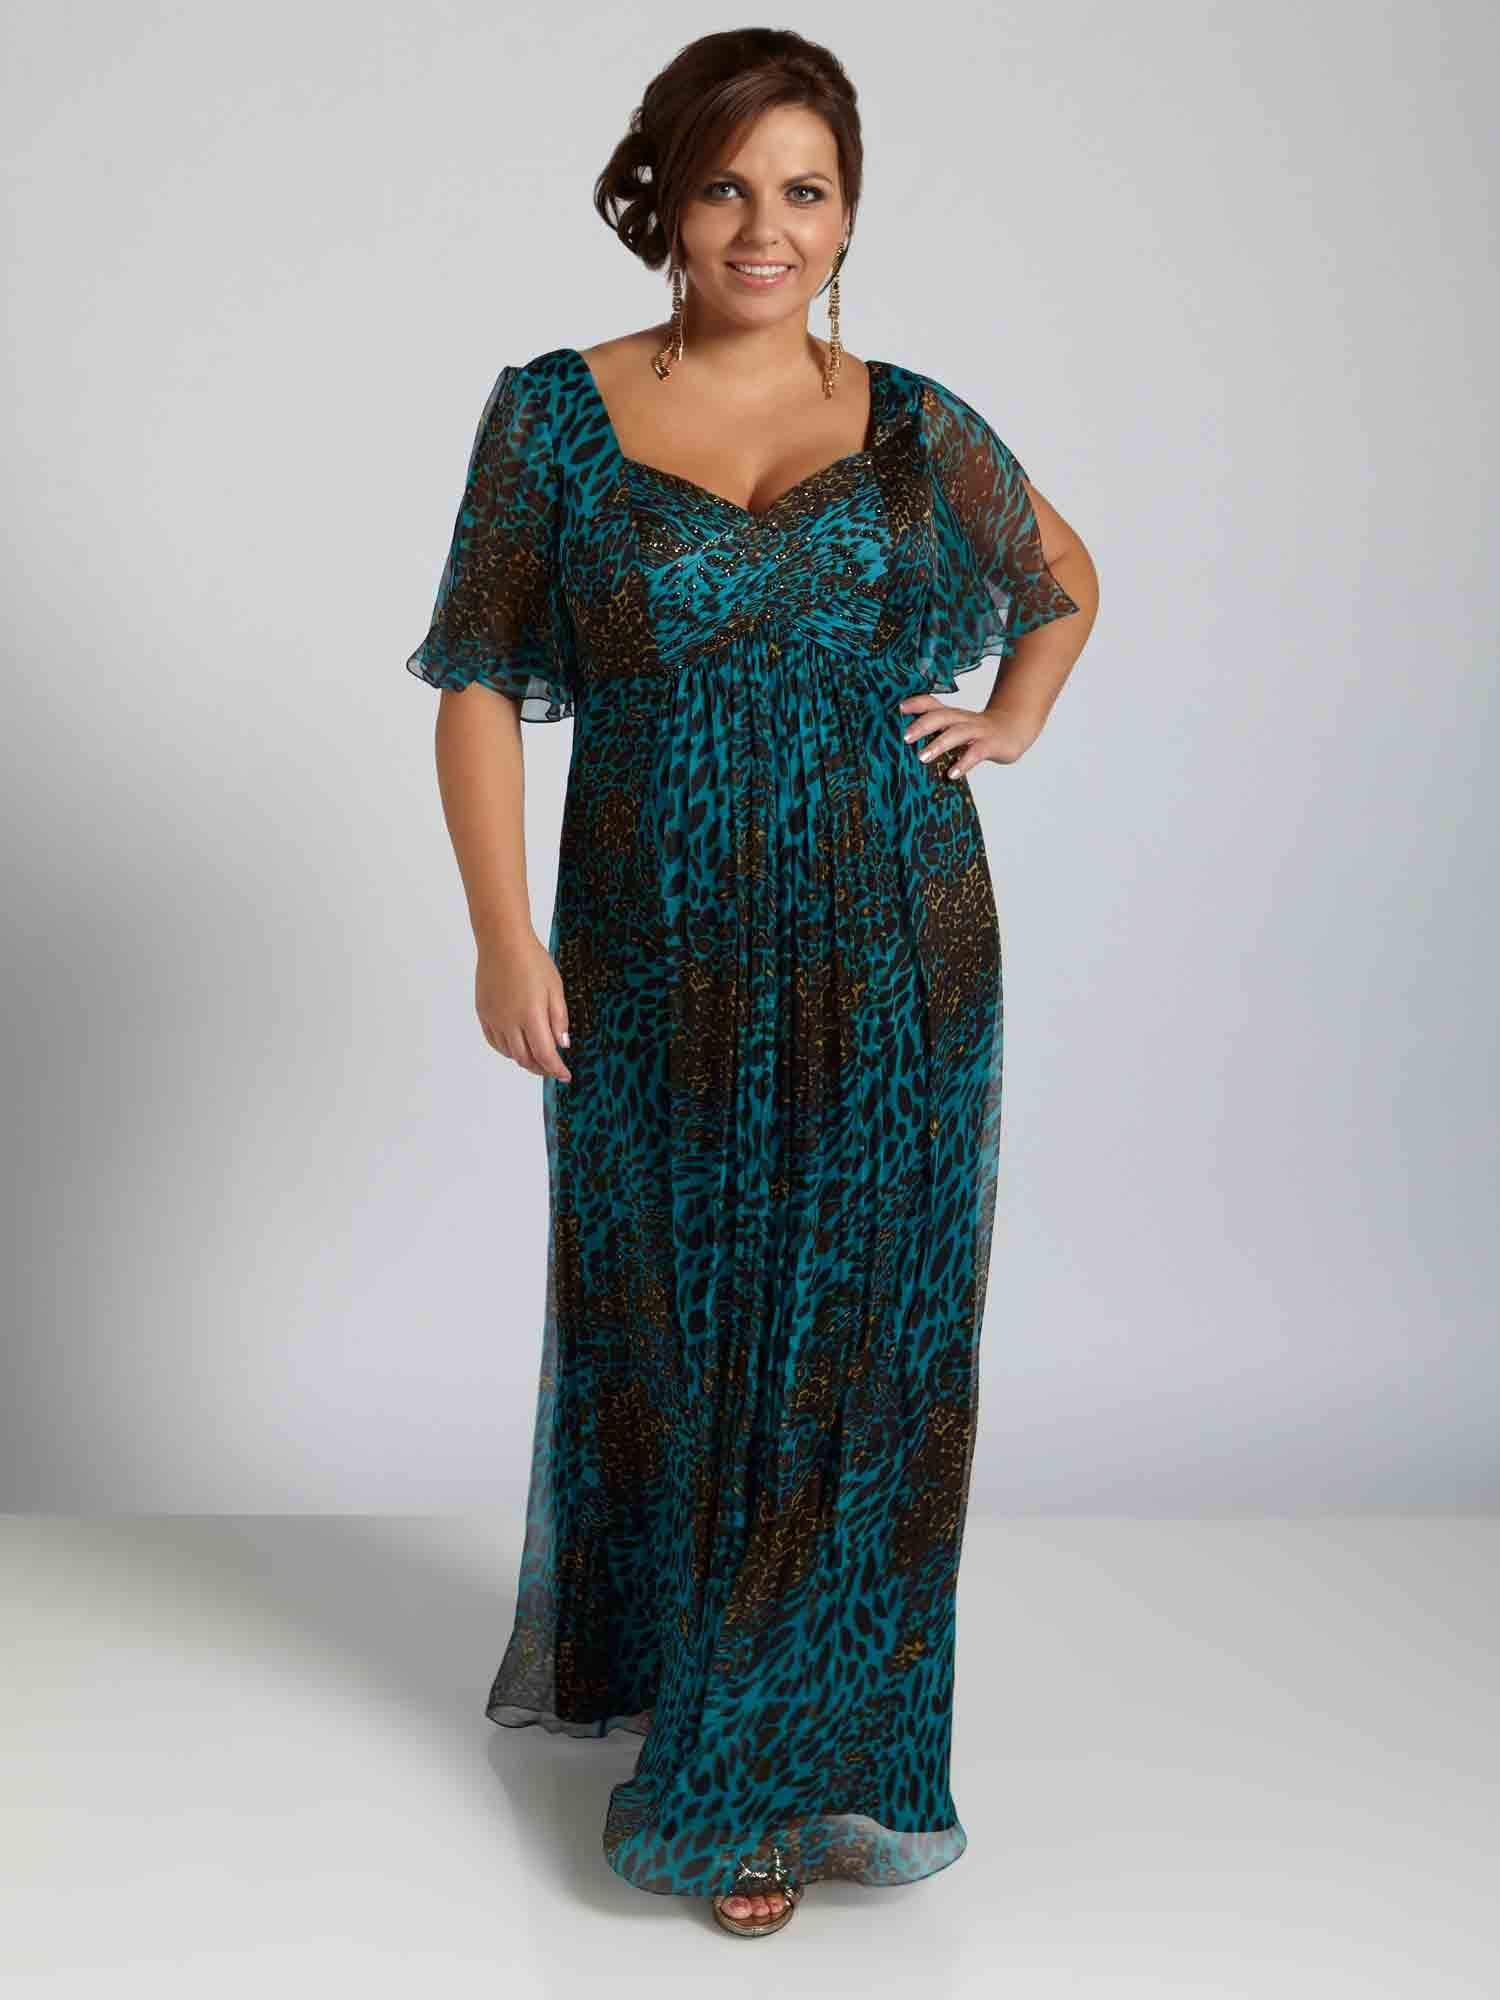 20 Plus Size Evening Dresses to Look Like Queen | Special occasion ...